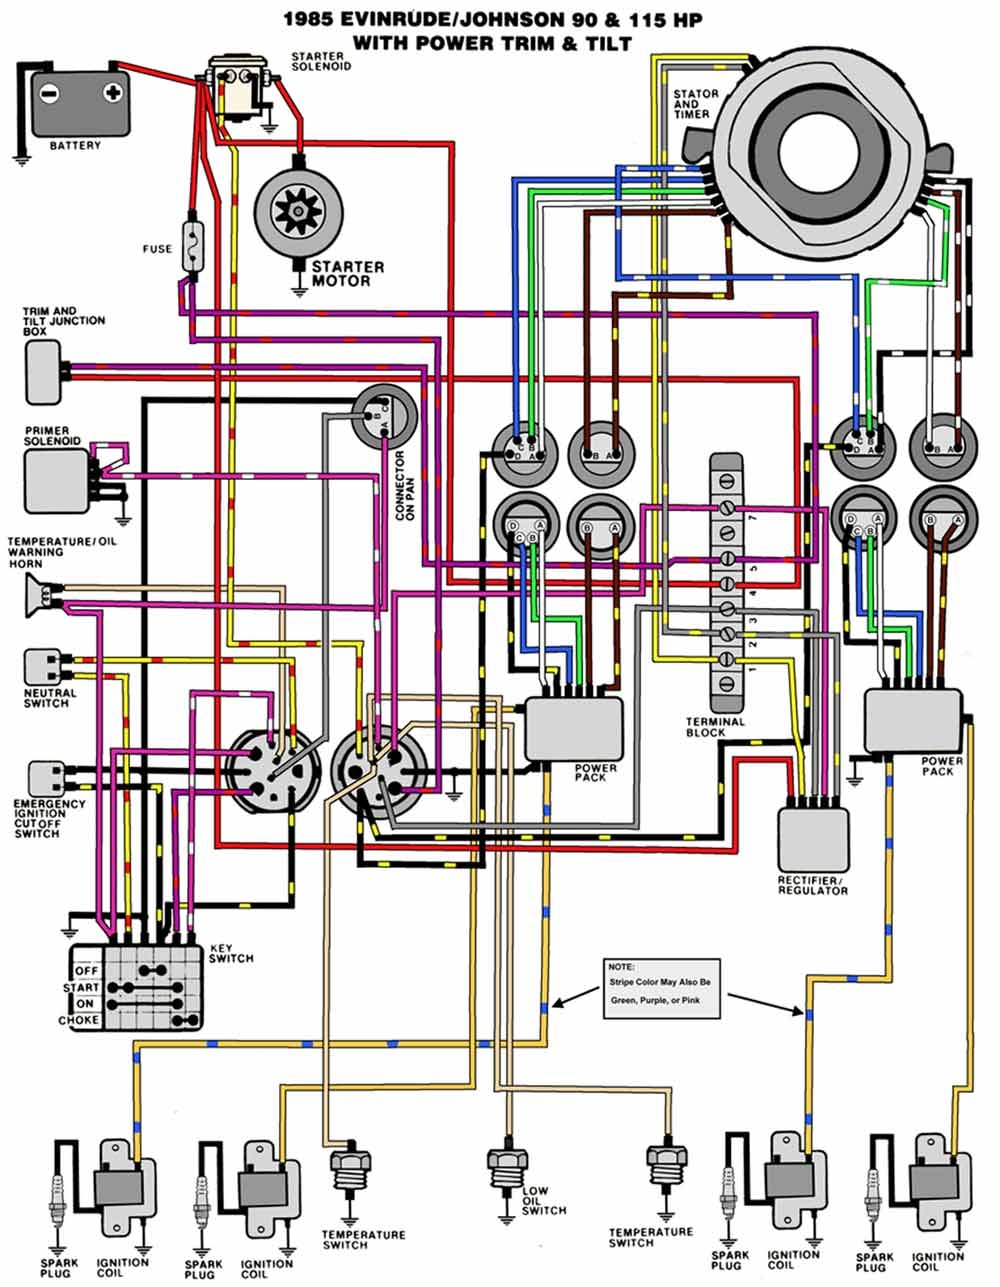 Online Reading Omc Co Wiring Diagram | ePANEL Digital Books on omc schematic diagrams, clark wiring diagram, sears wiring diagram, nissan wiring diagram, johnson wiring diagram, polaris wiring diagram, chevrolet wiring diagram, 96 evinrude wiring diagram, john deere wiring diagram, omg wiring diagram, apc wiring diagram, 1972 50 hp evinrude wiring diagram, evinrude key switch wiring diagram, atlas wiring diagram, viking wiring diagram, sea ray wiring diagram, regal wiring diagram, ace wiring diagram, chris craft wiring diagram,